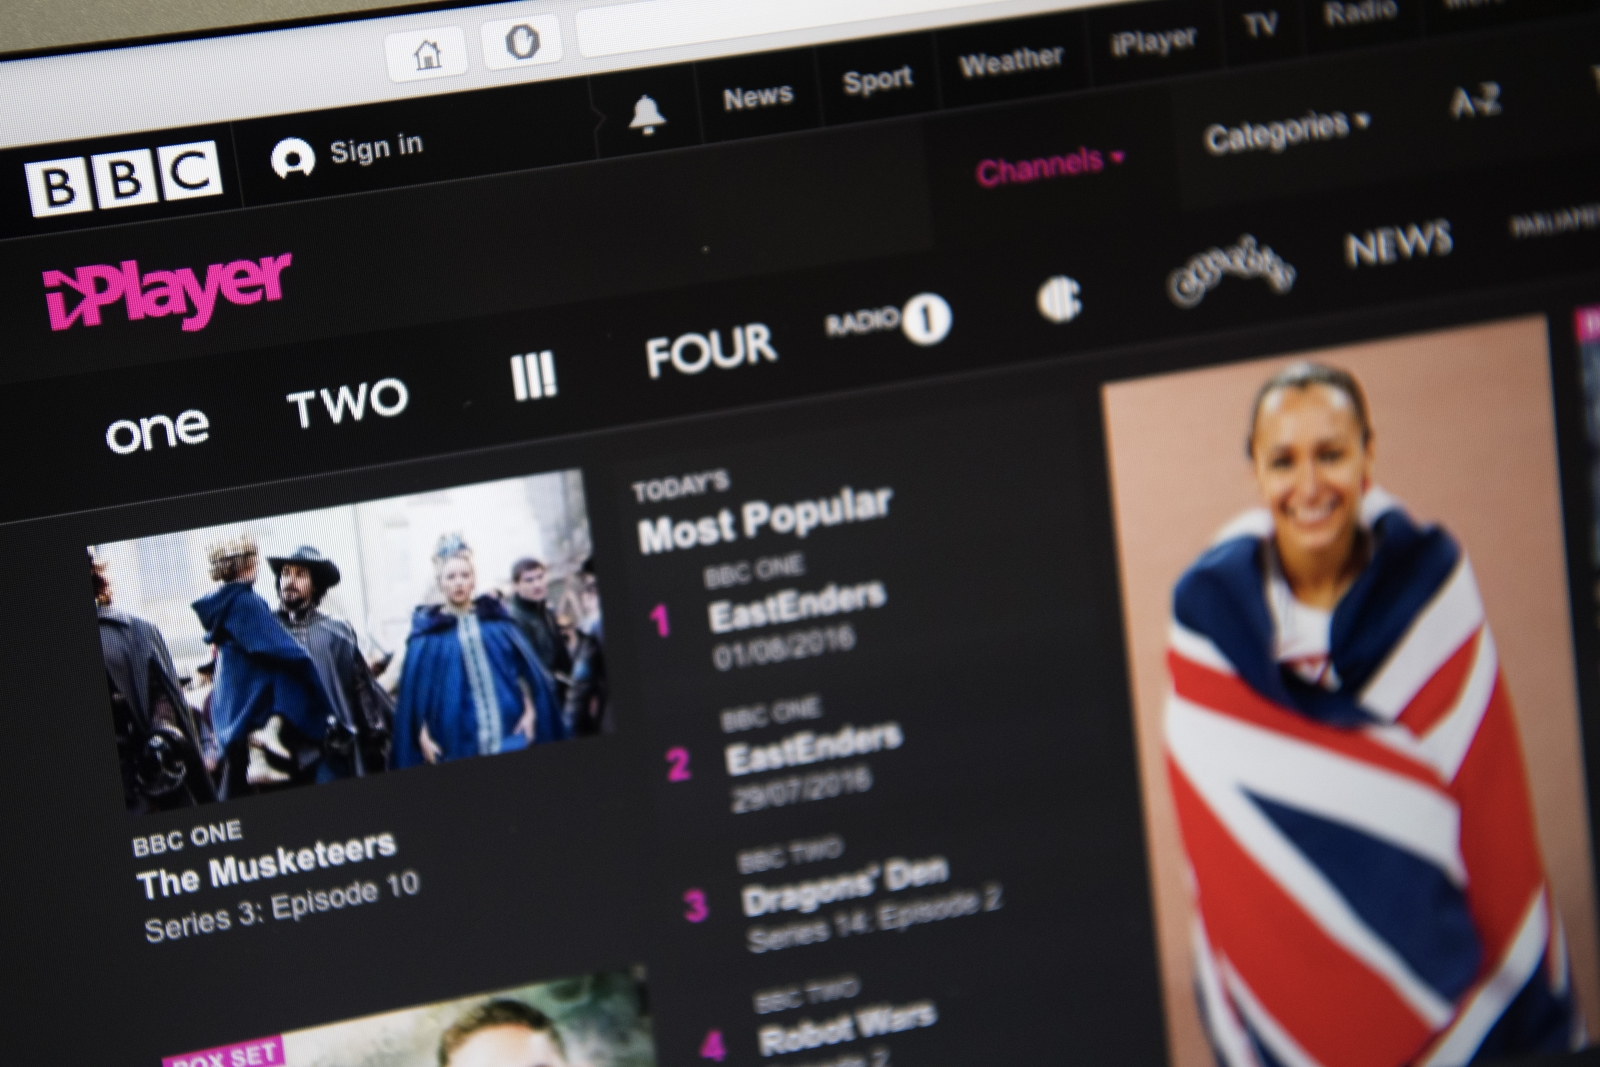 BBC iPlayer Users Now Need A TV License In The UK